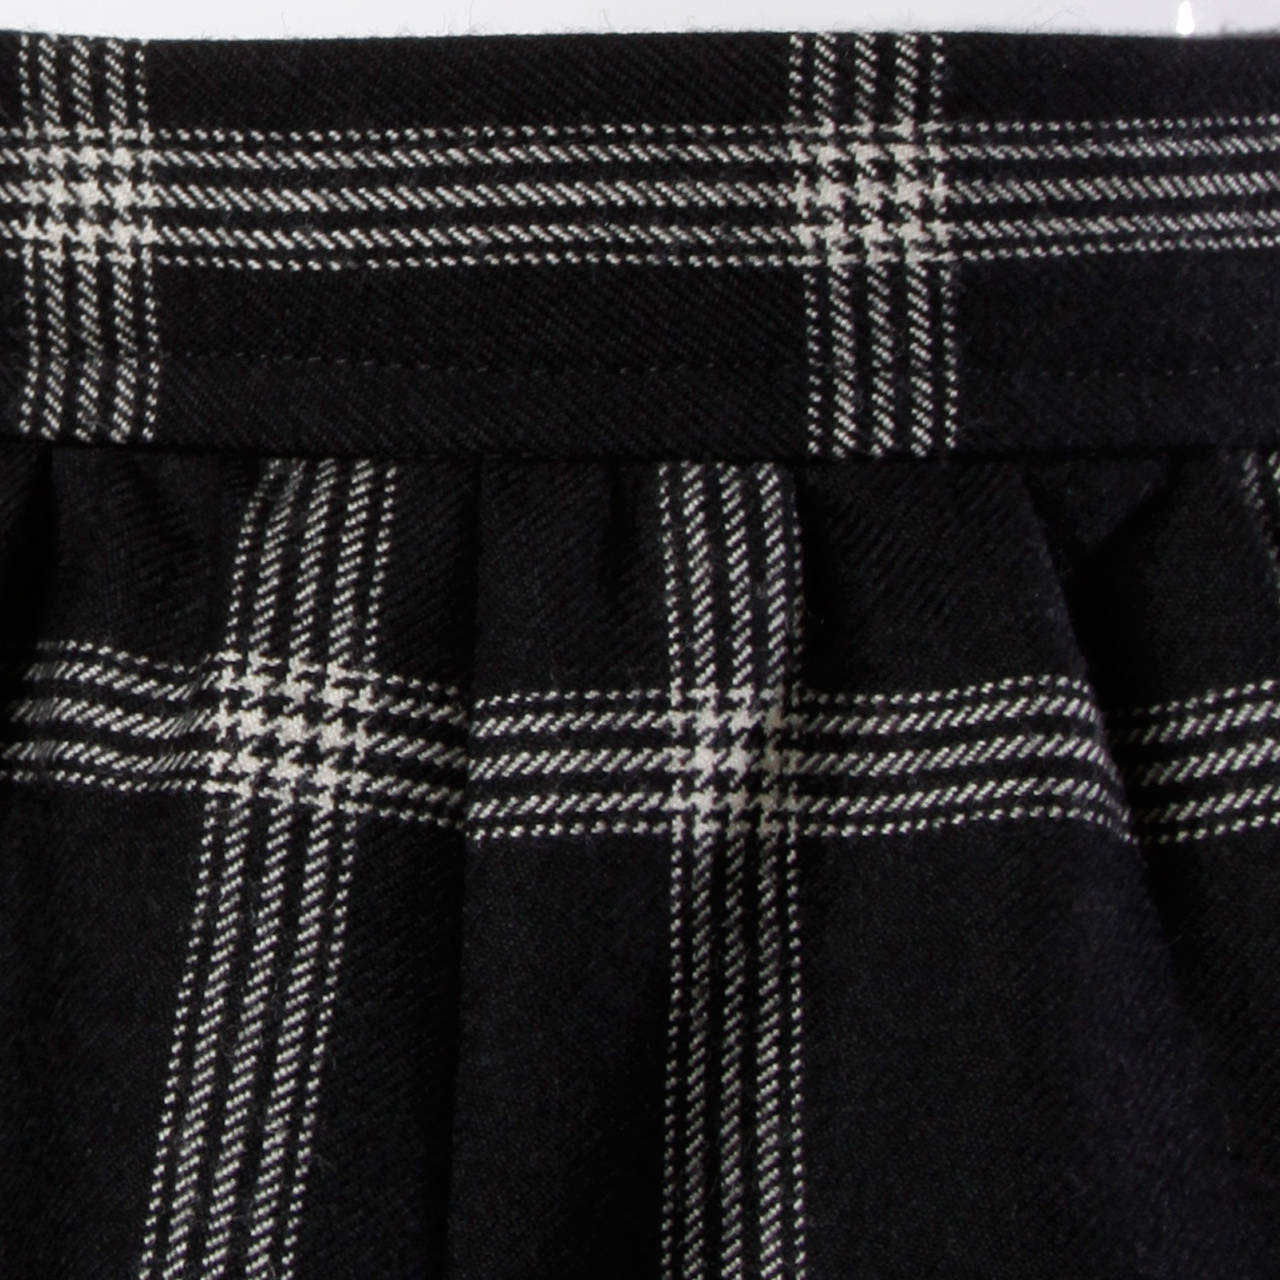 Koos Van Der Akker Vintage Black + White Plaid Wool Skirt 6